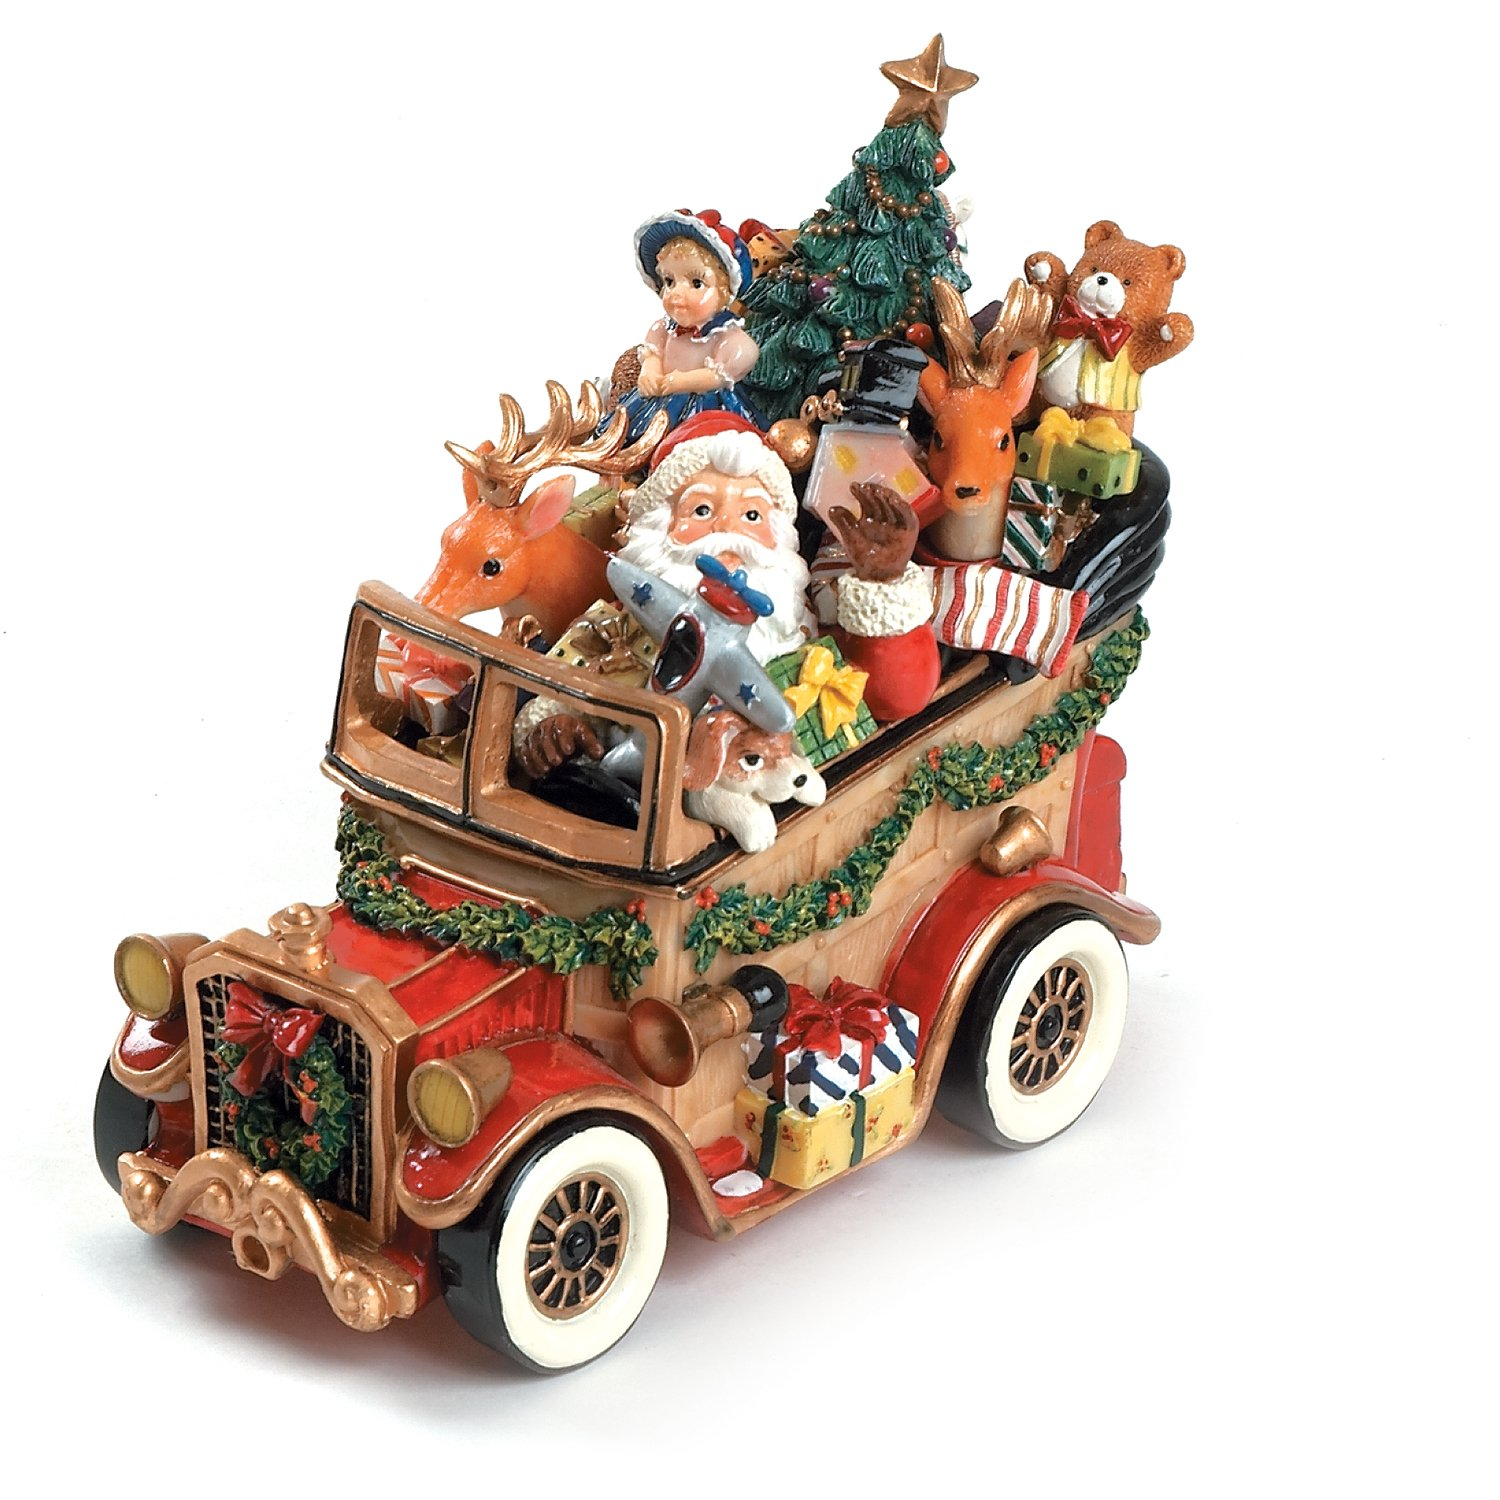 Santa Classic Car 'We Wish You A Merry Christmas' Musical Figurine Fitz and Floyd 29-459